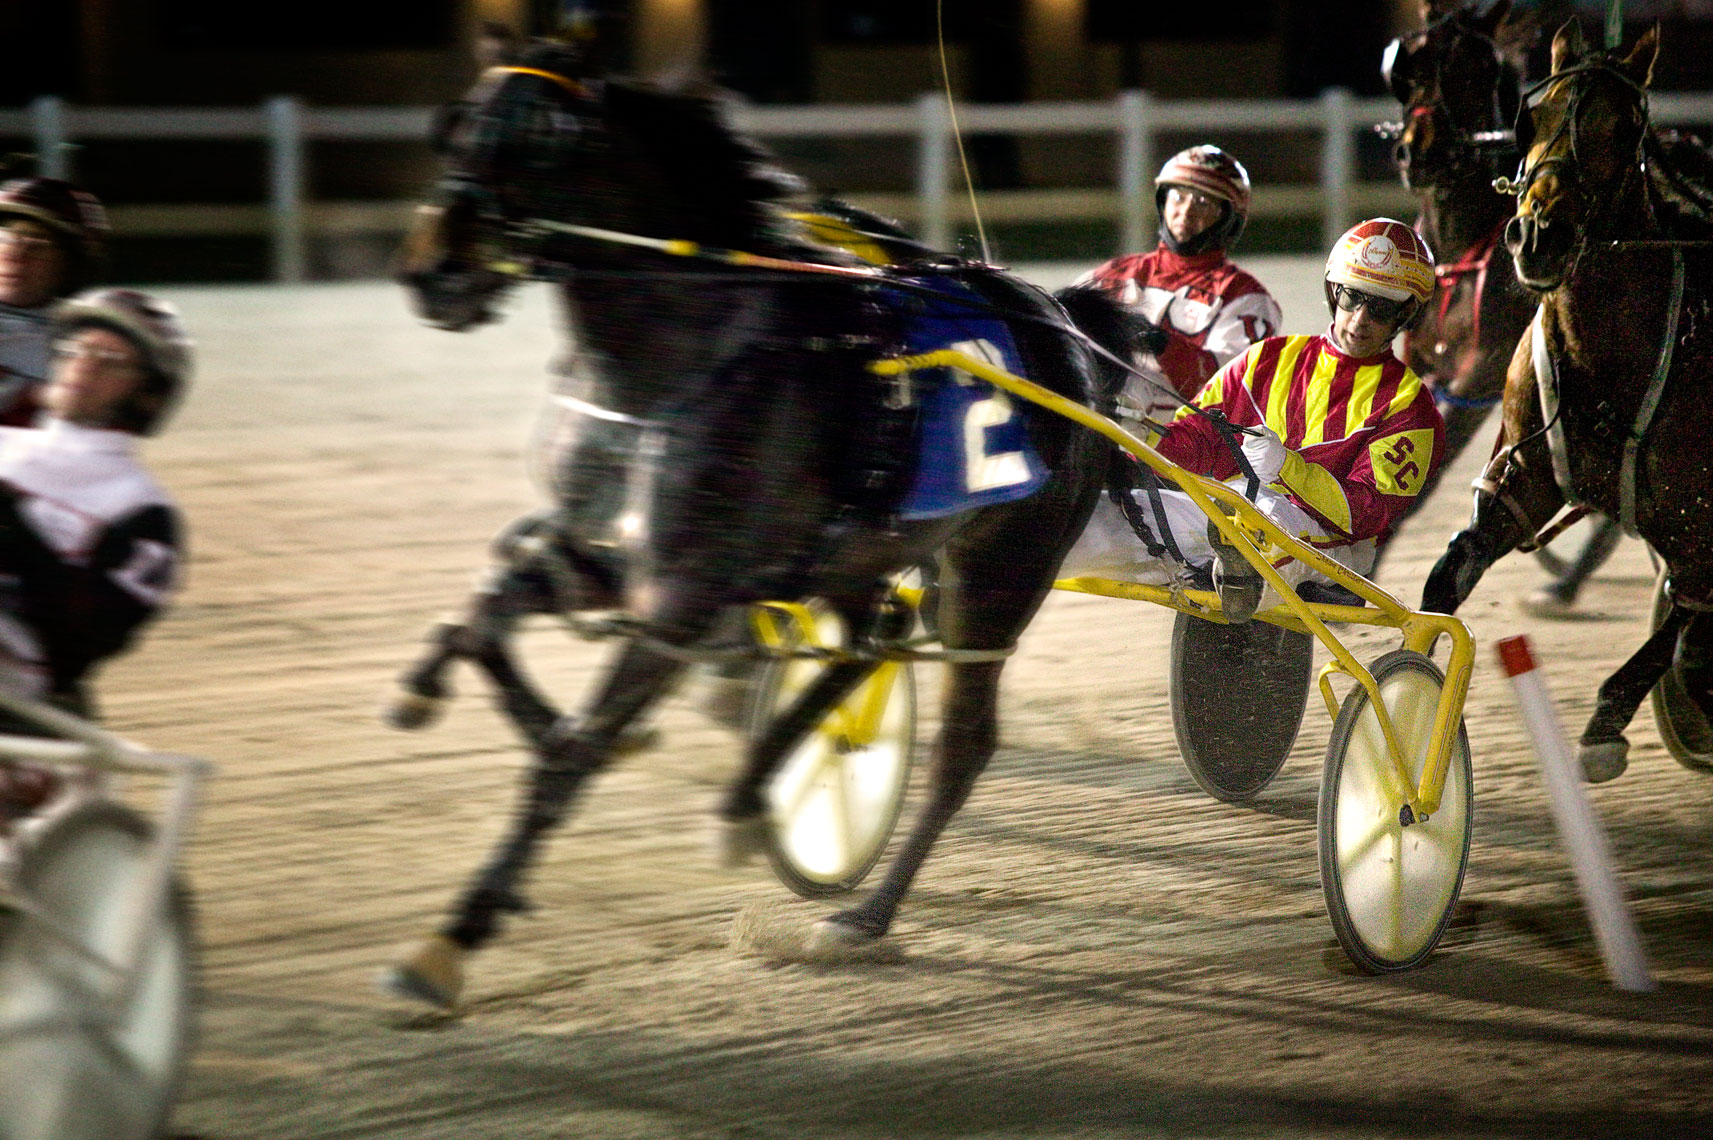 Harness Racing_030| Robert Randall Advertising Photographer, Commercial Photographer, CGI, Portrait, and Lifestyle Photography